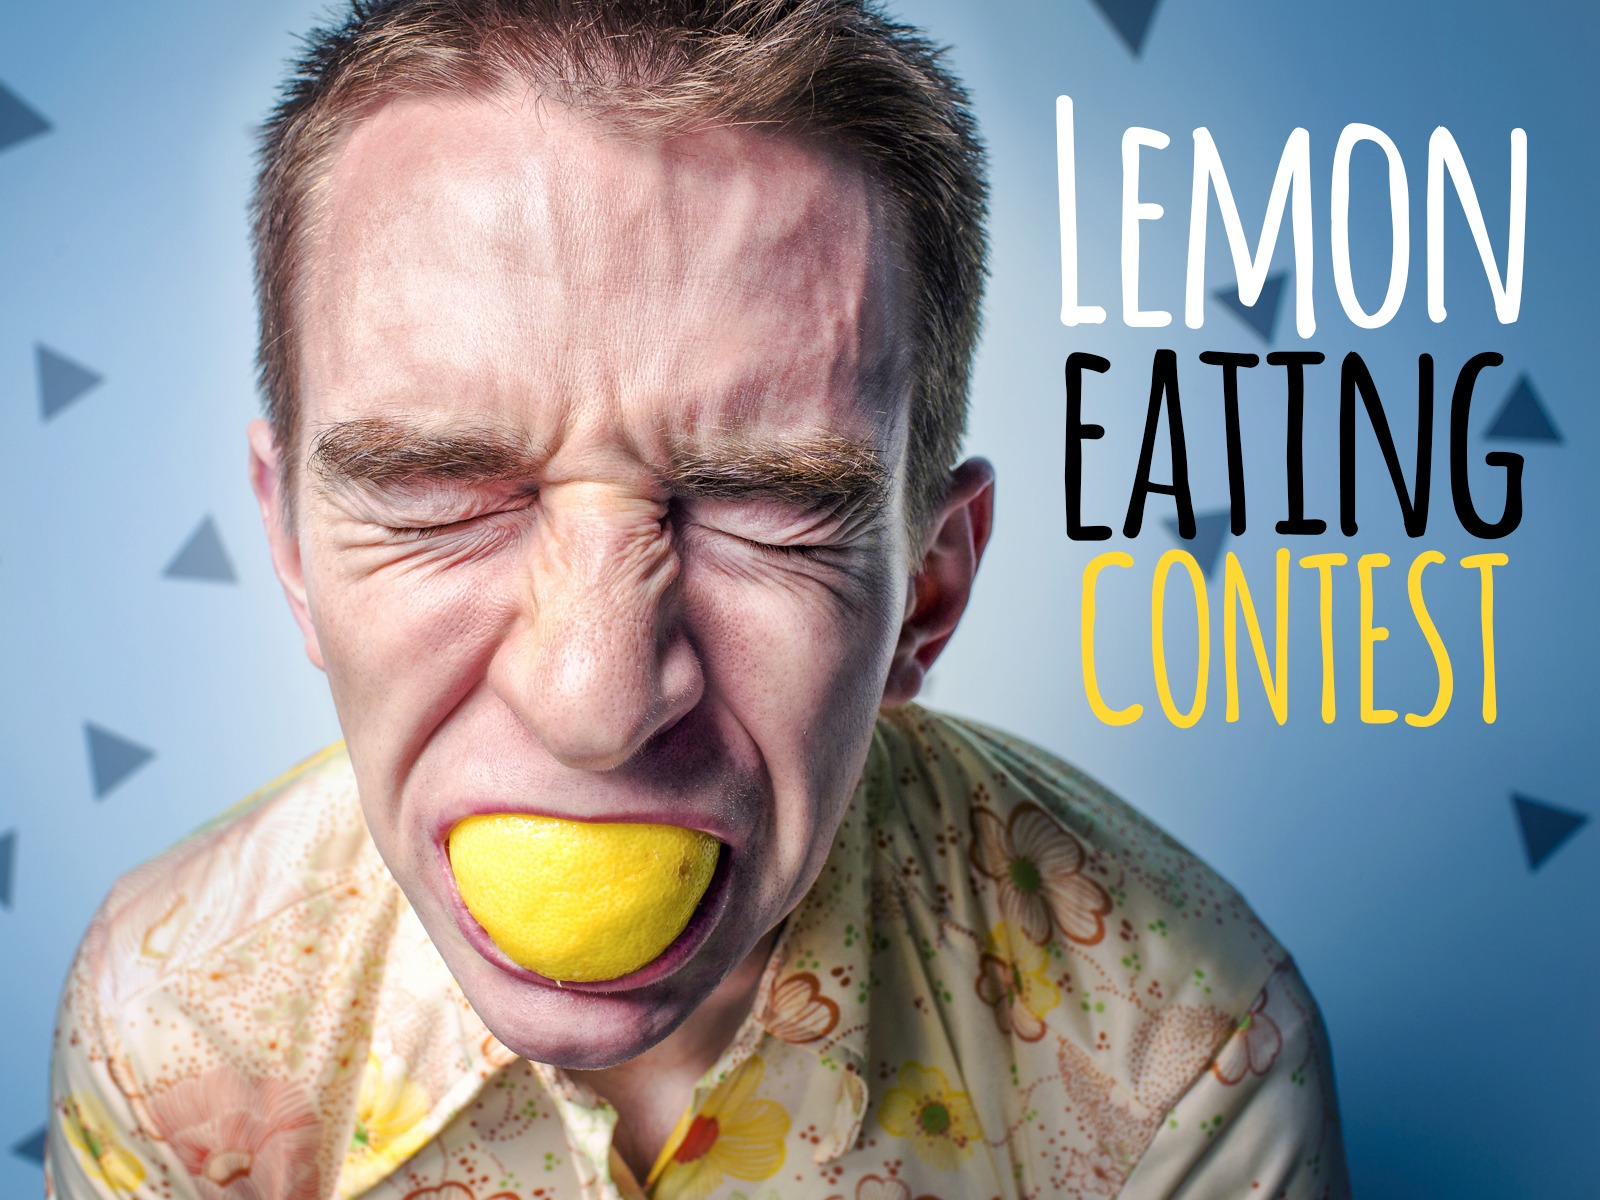 Lemon Eating Contest